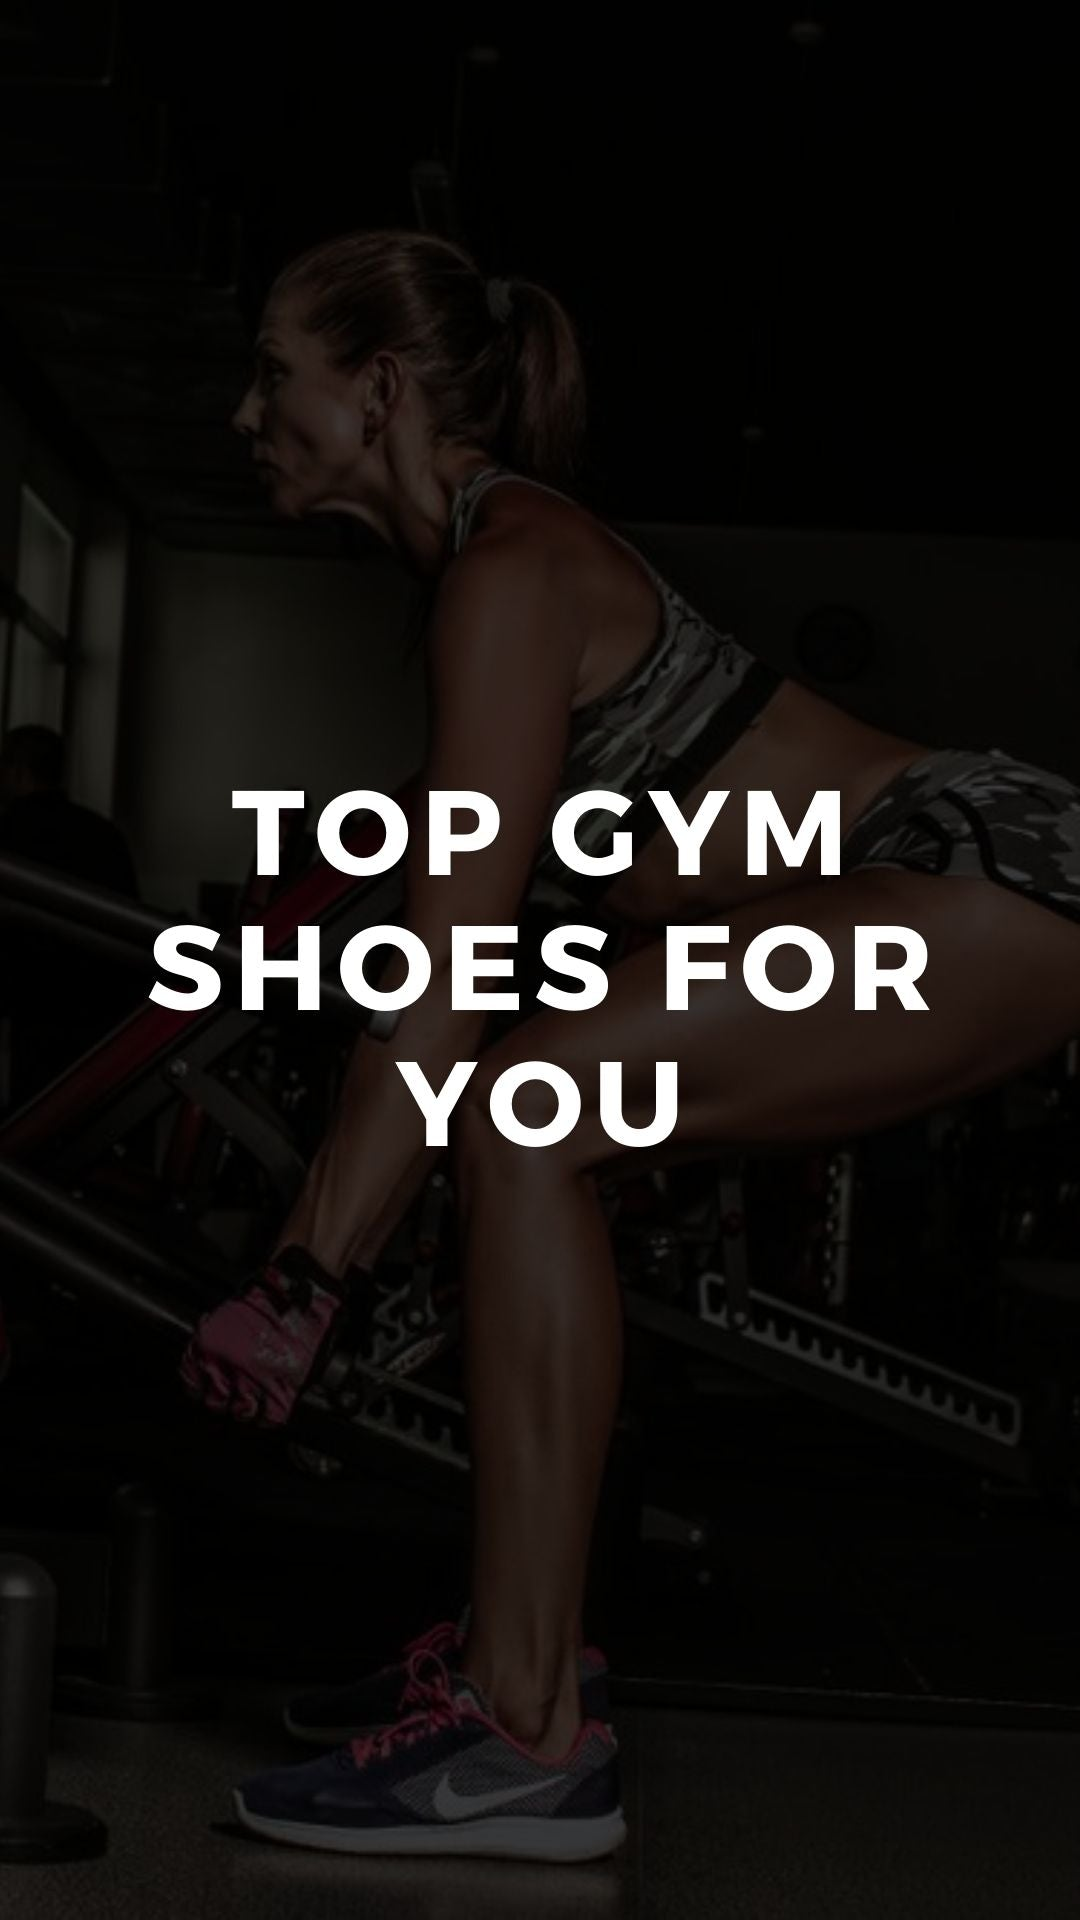 Why Should You Choose The Best Gym Shoes For Your Workouts?